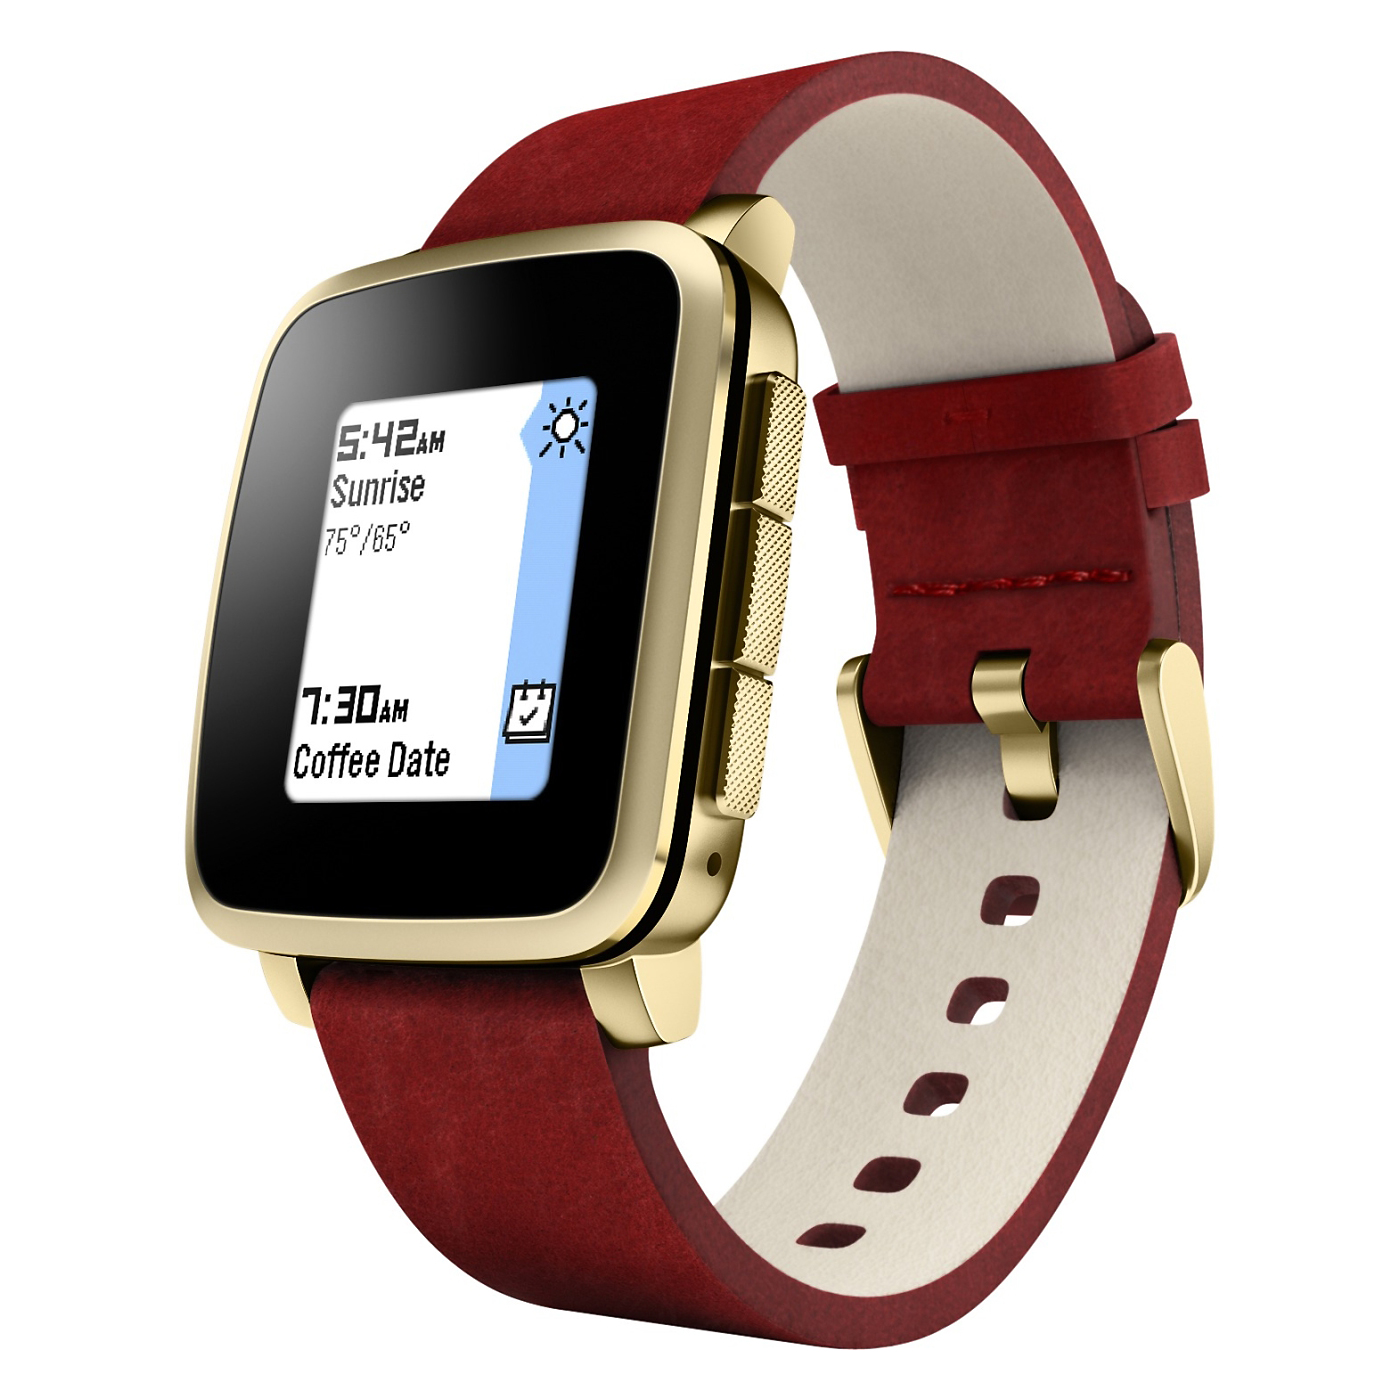 Pebble Time Steel Smartwatch Gold